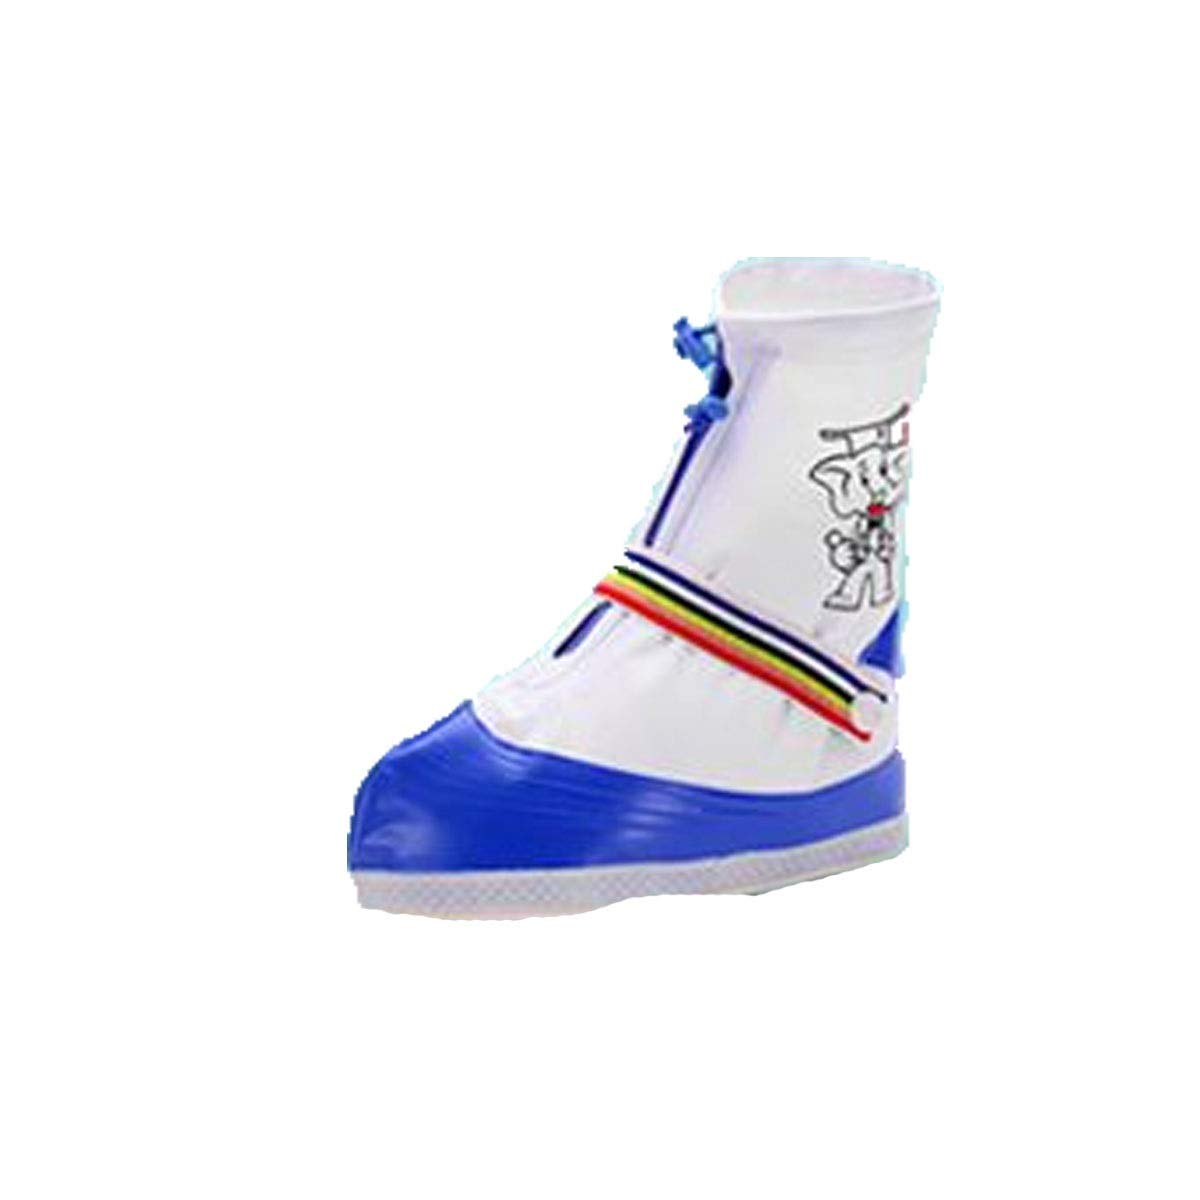 WUHUIZHENJINGXIAOBU Waterproof Shoe Cover, Rainy Student Special Thick Wear-Resistant Anti-Slip Men and Women Rain Boots, Pink, Blue, Green Shoe Covers That can be Worn on Rainy Days,